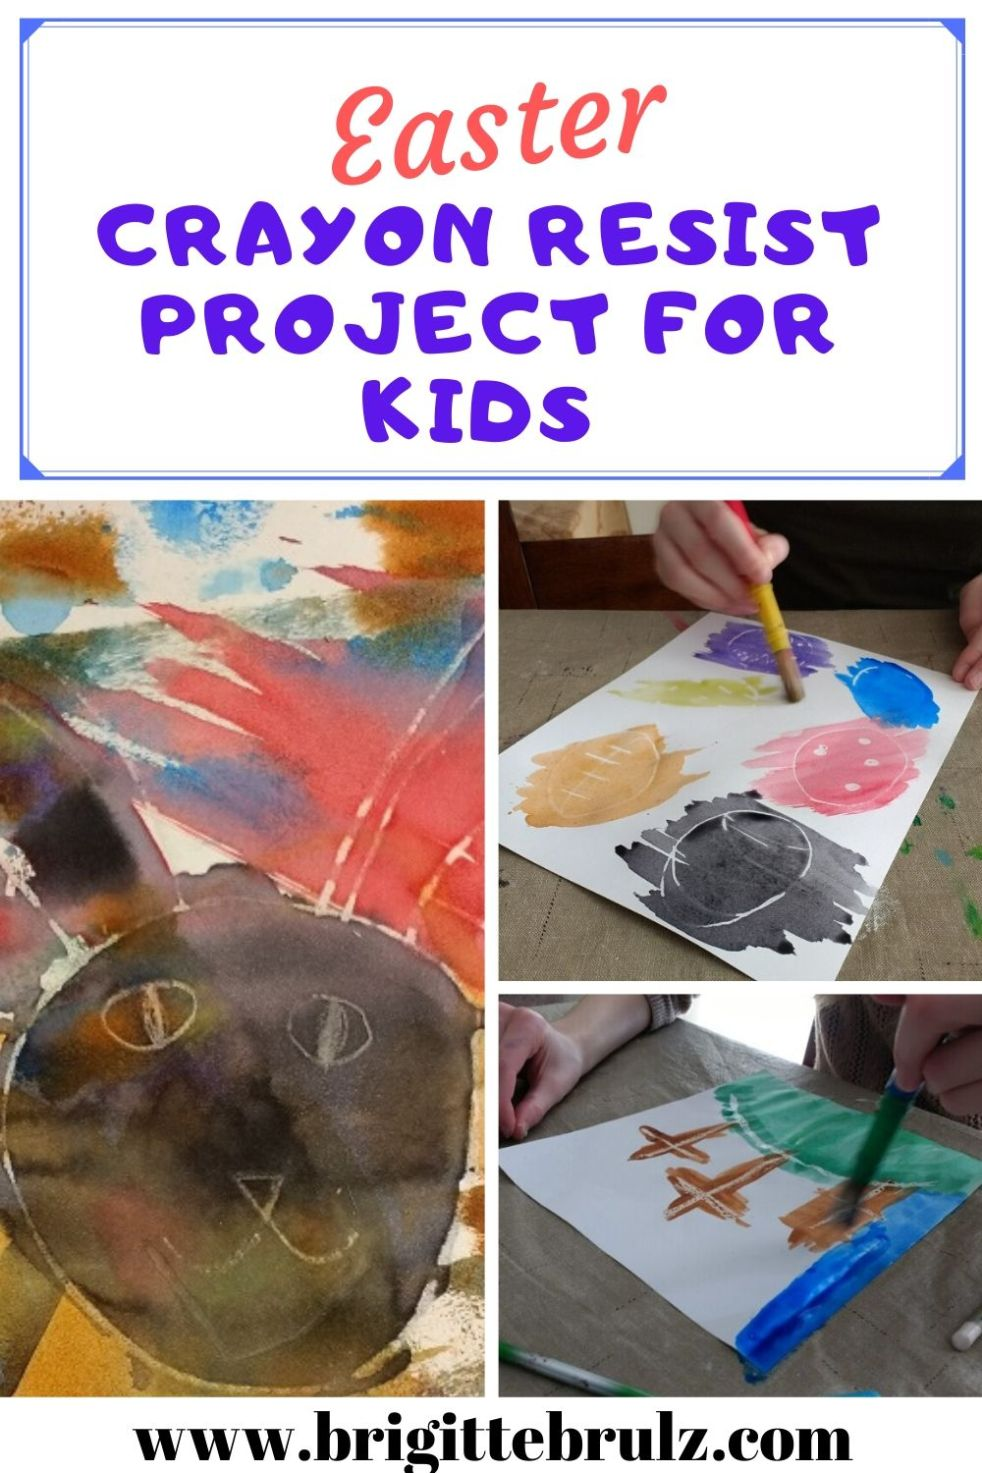 Easter Crayon Resist Project for Kids